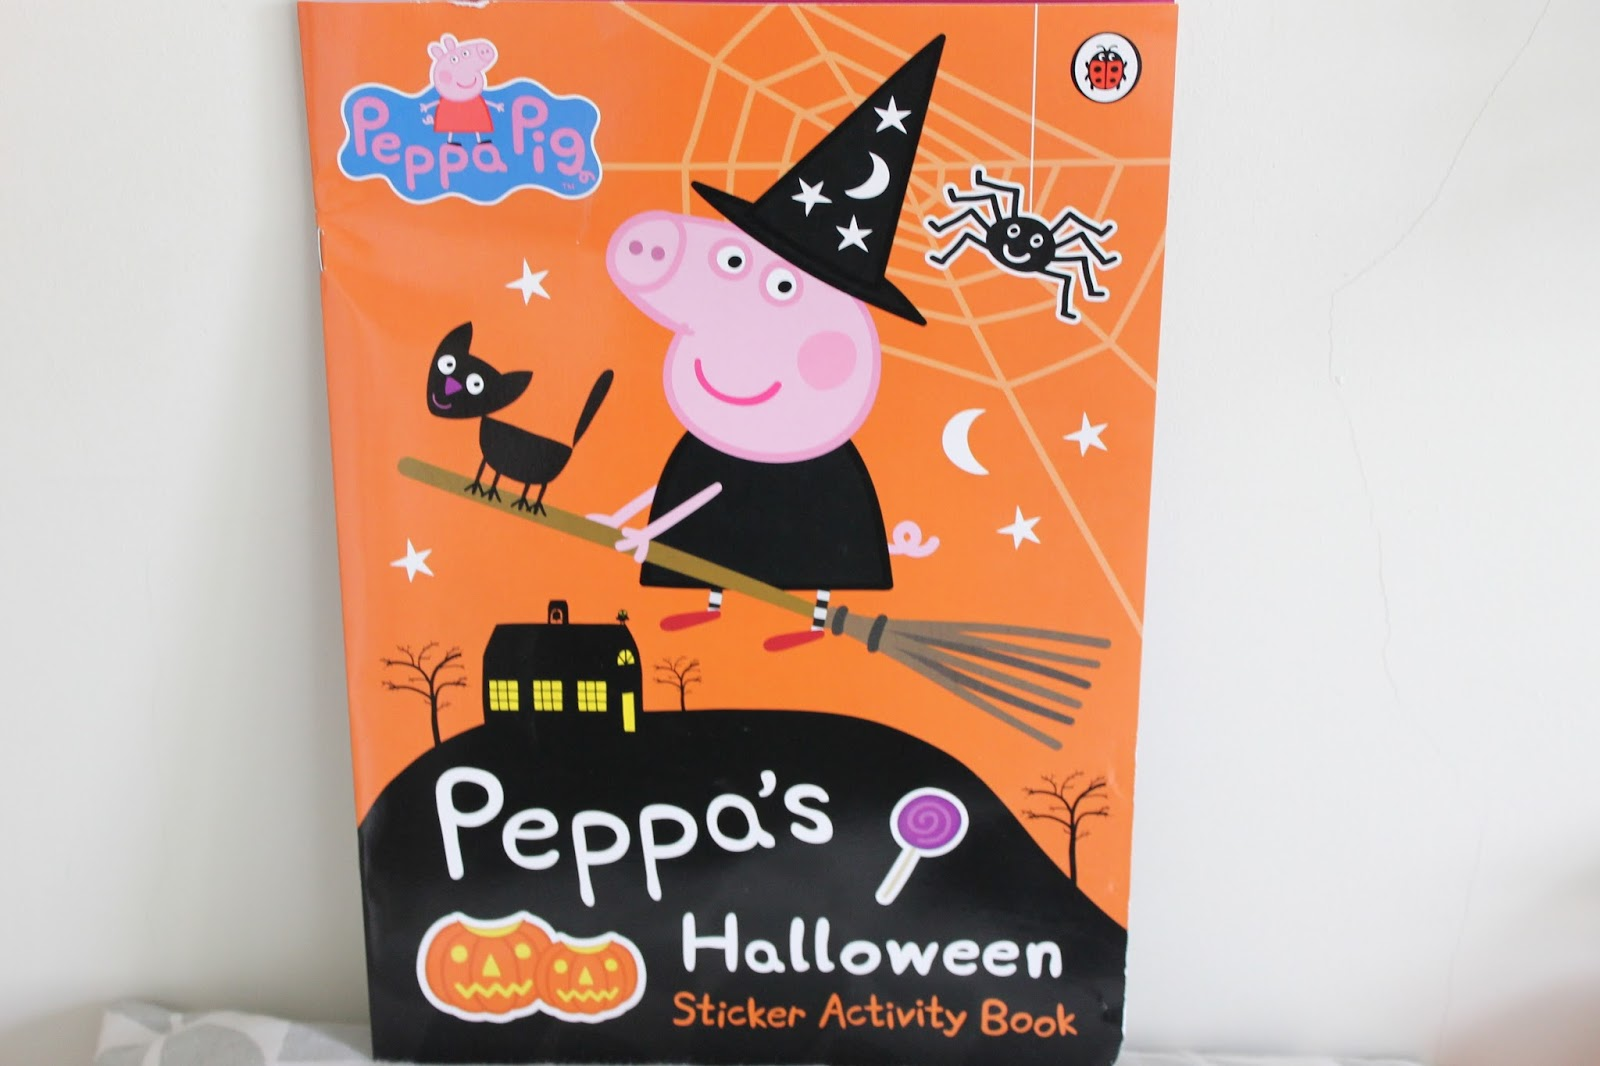 kids books halloween, halloween books, childrens books for halloween, toddler books for halloween, peppa halloween book